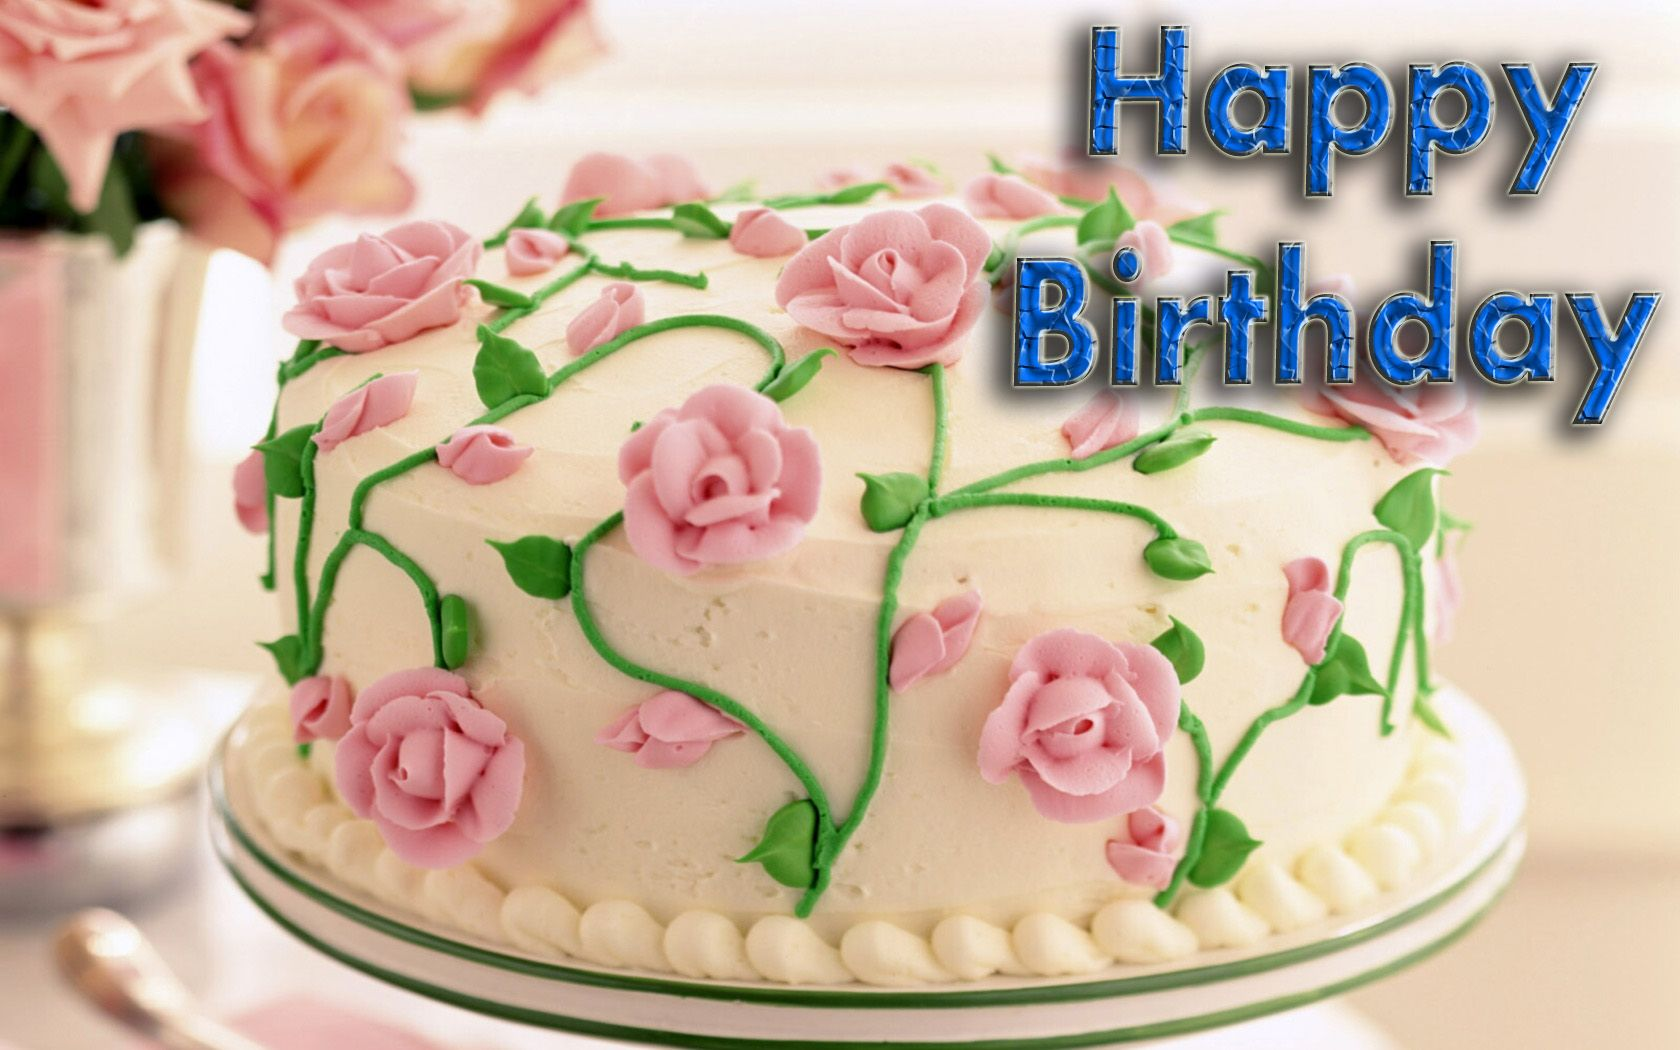 Happy Birthday Flowers Cake home greetings and wishes happy birthday